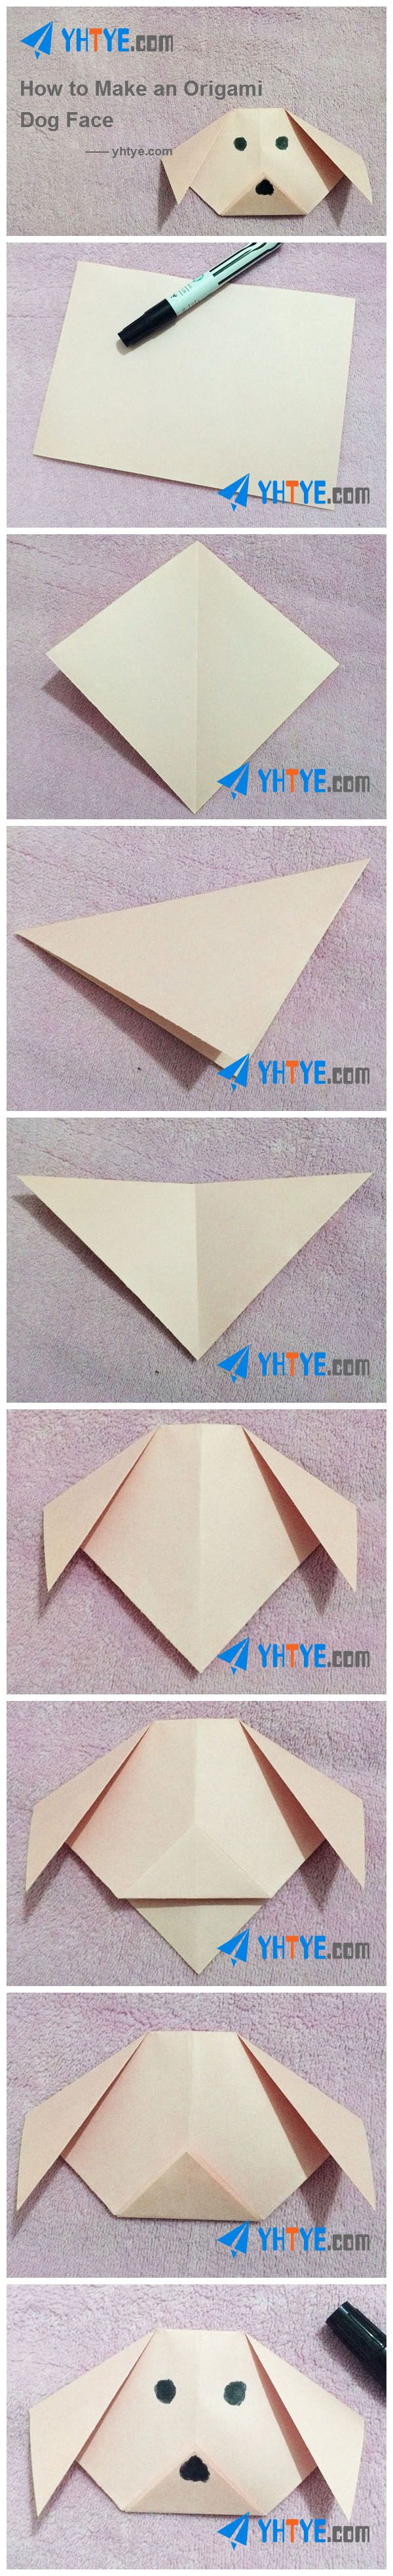 Origami dog face how to origami - How To Make An Origami Dog Face